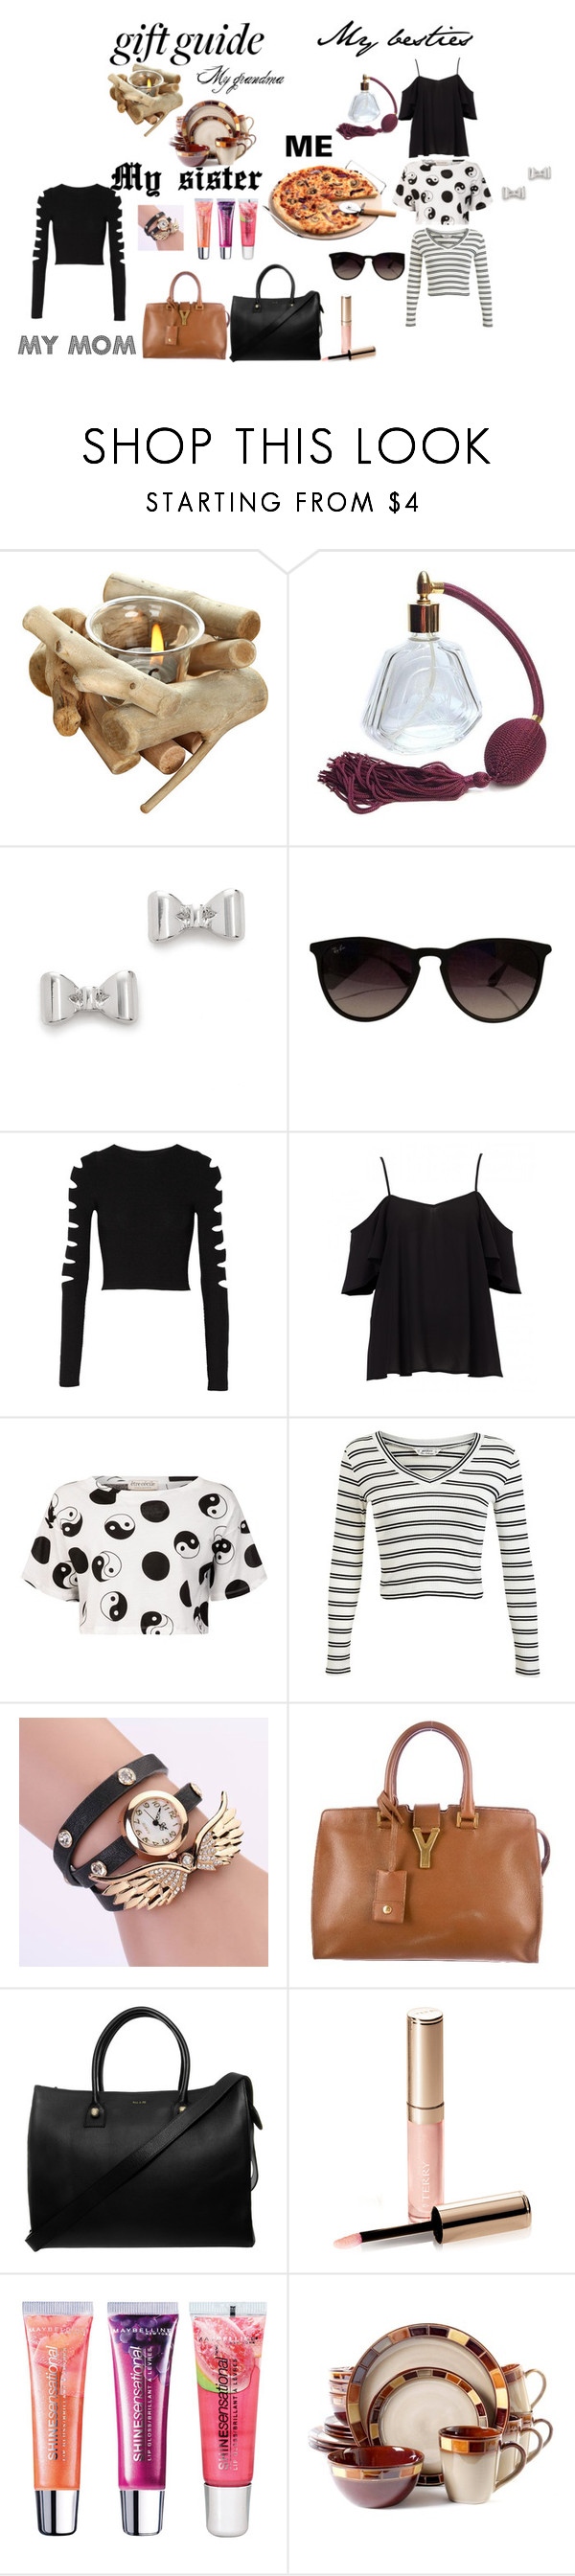 """""""And a Pizza please!"""" by fabiagd ❤ liked on Polyvore featuring moda, Marc by Marc Jacobs, Ray-Ban, Cushnie Et Ochs, Être Cécile, Miss Selfridge, Yves Saint Laurent, Paul & Joe, By Terry e Maybelline"""